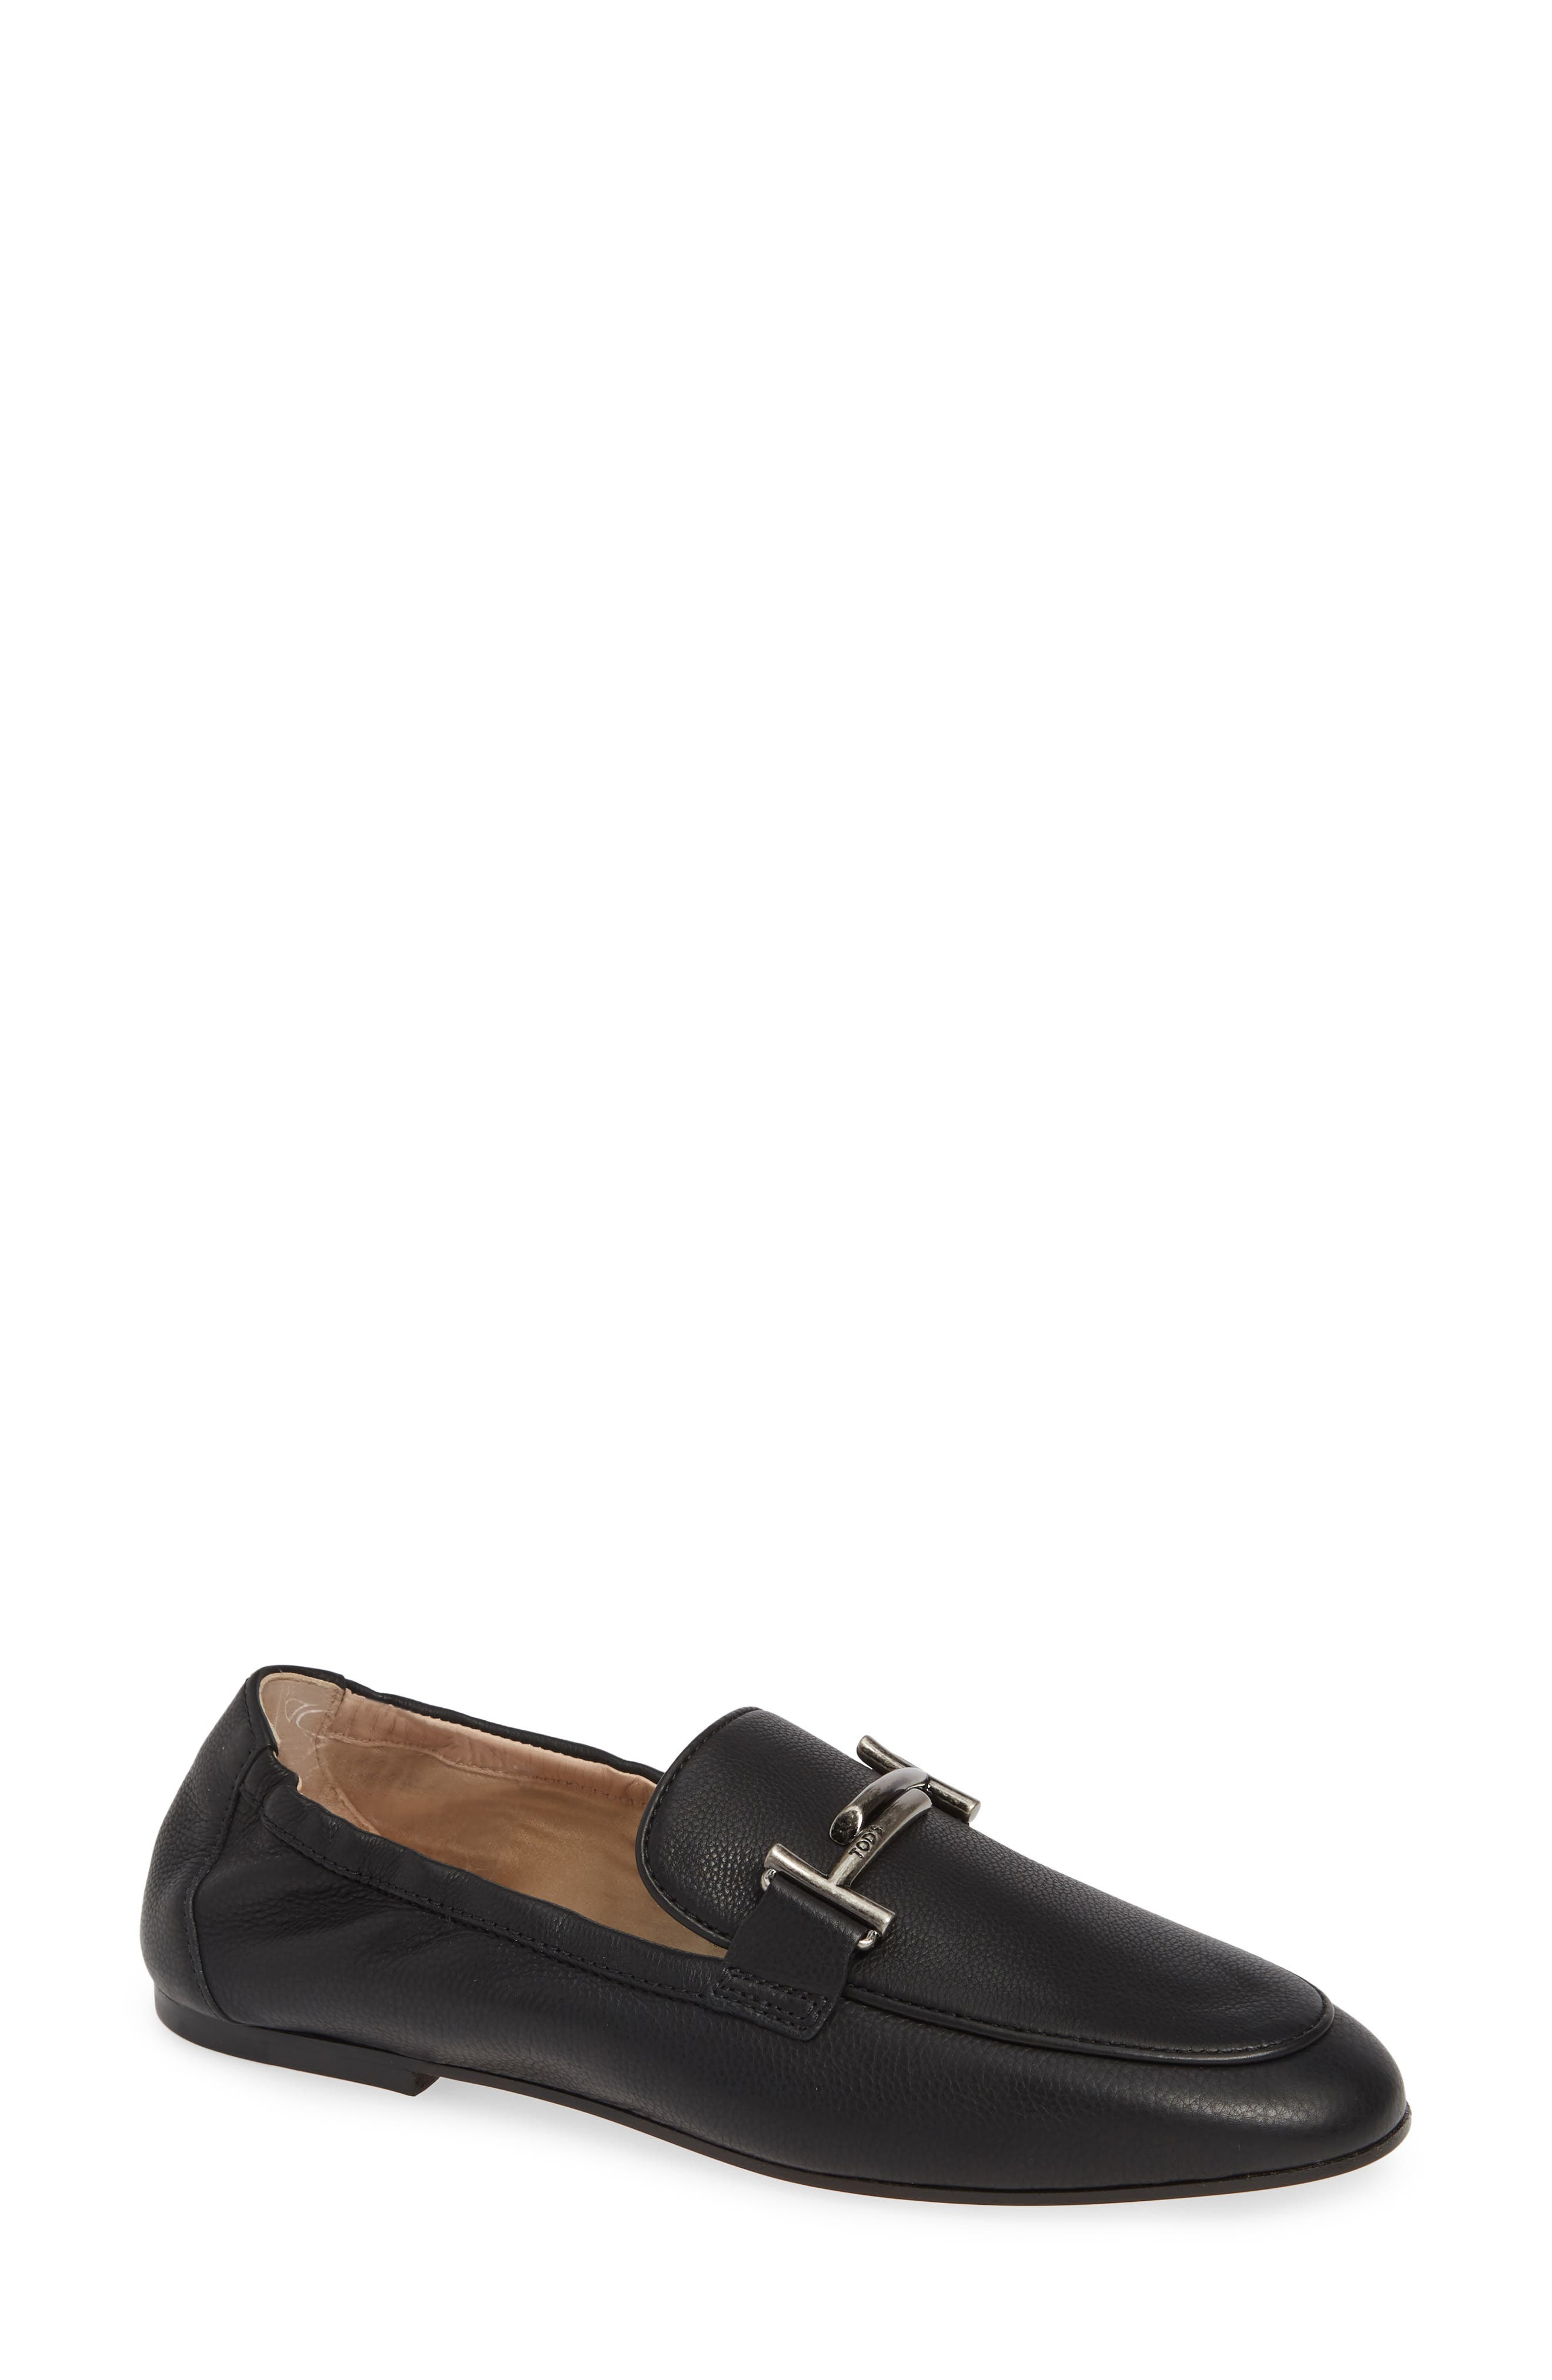 Double T Loafer,                         Main,                         color, BLACK LEATHER